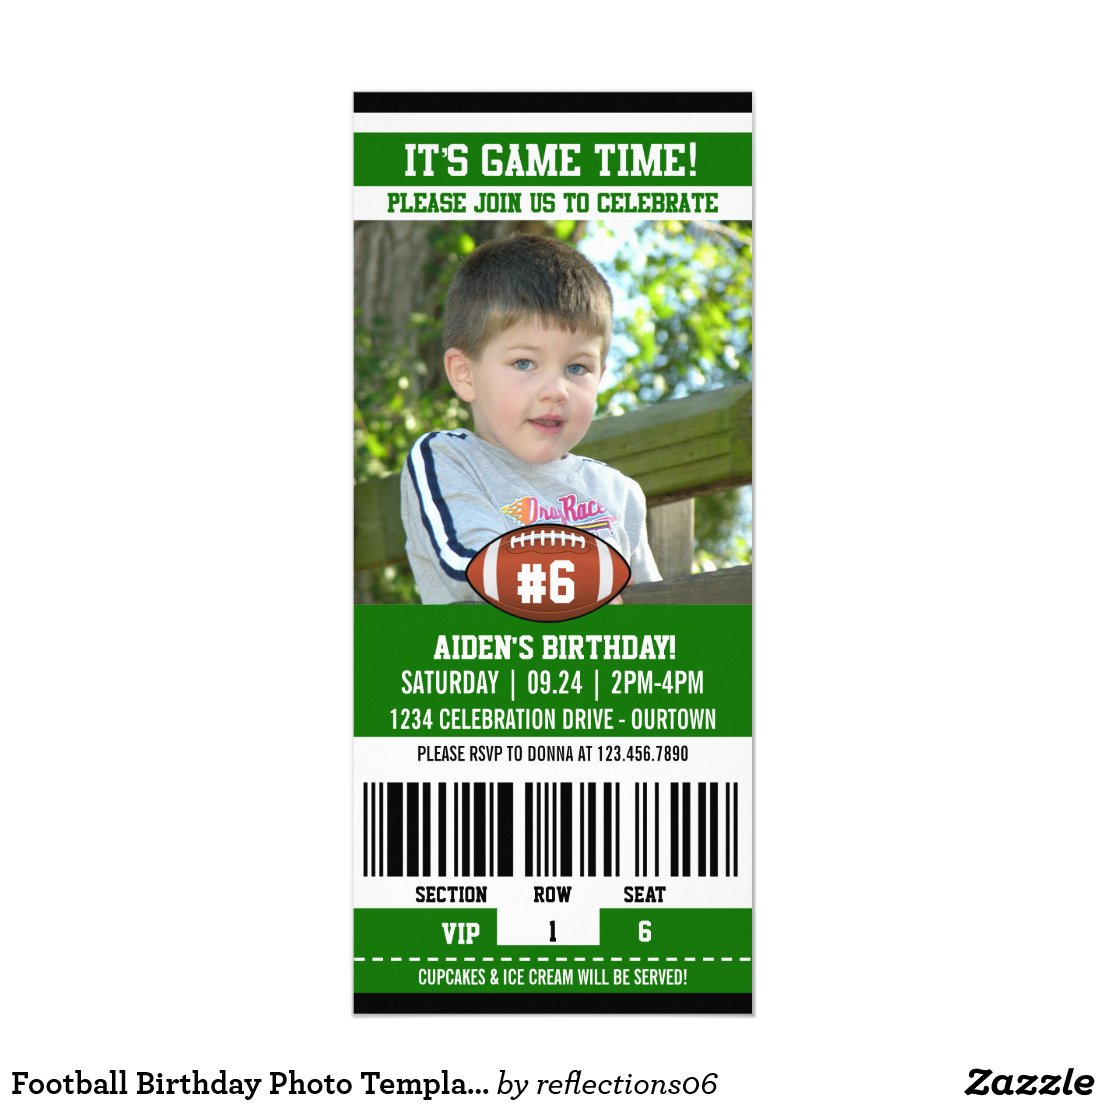 Football Birthday Photo Template